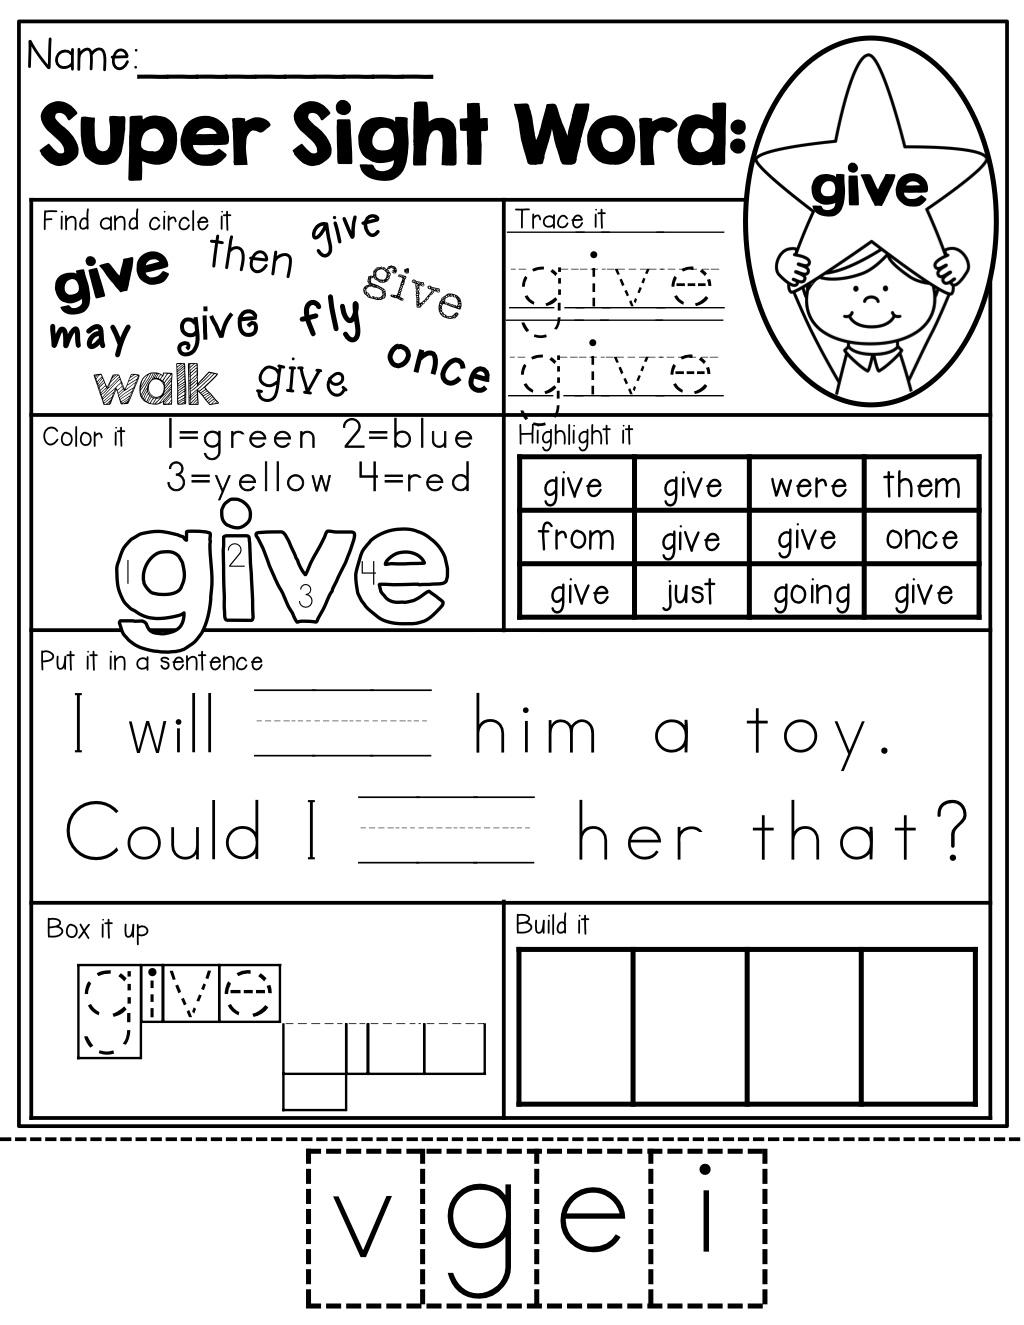 Workbooks kindergarten reading worksheets sight words : Sight Word Super Stars NO PREP (The BUNDLE) | Learning, Sight word ...